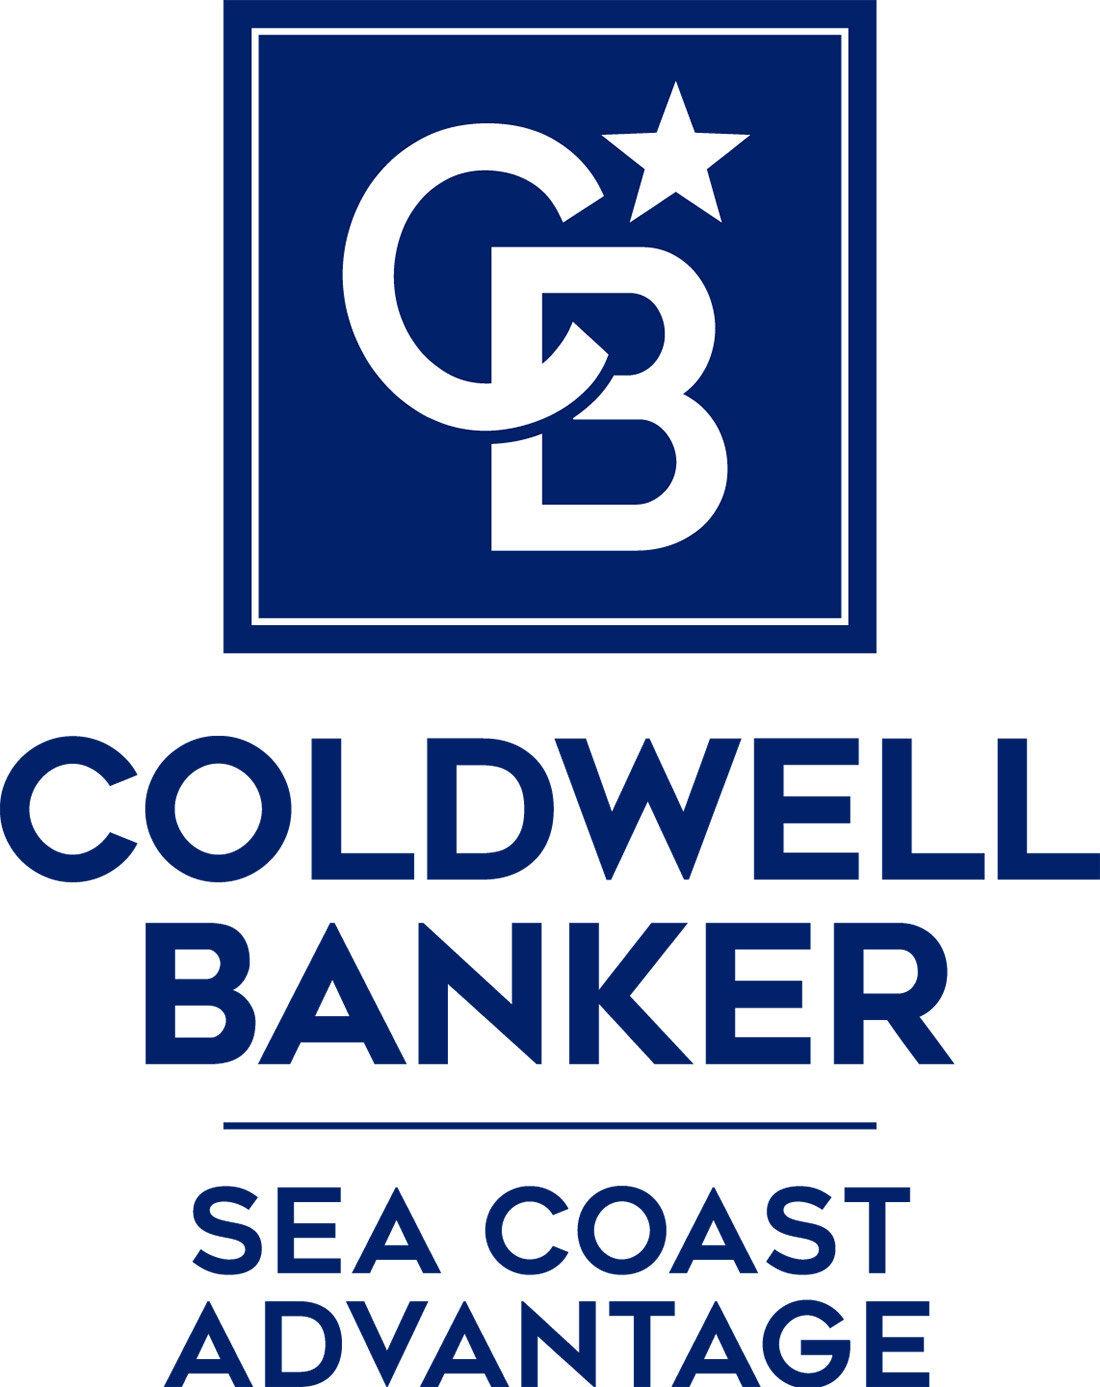 James Willetts - Coldwell Banker Sea Coast Advantage Realty